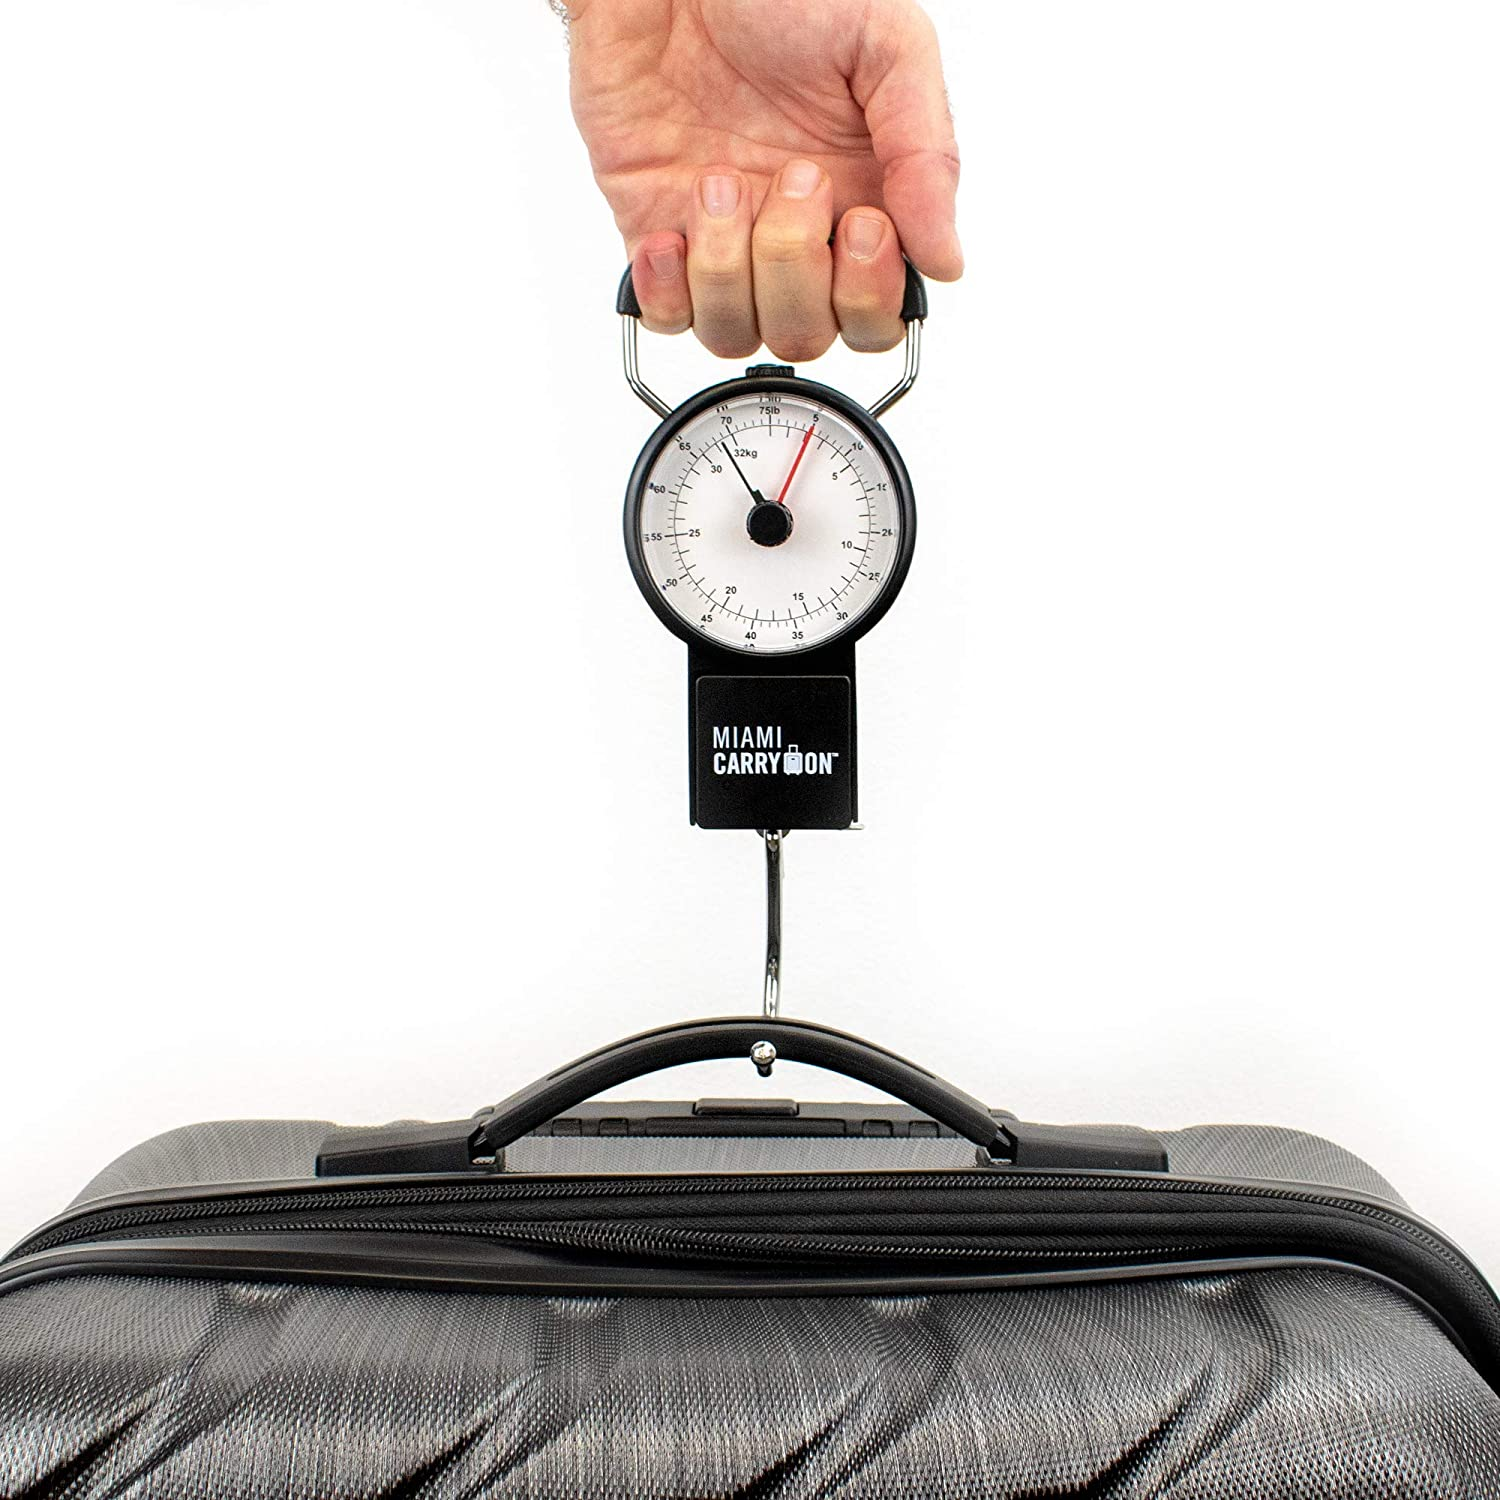 Mechanical Luggage Scale/Fishing Scale with Tape Measure, Up to 75 Pounds / 34KG: Amazon.com: Industrial & Scientific